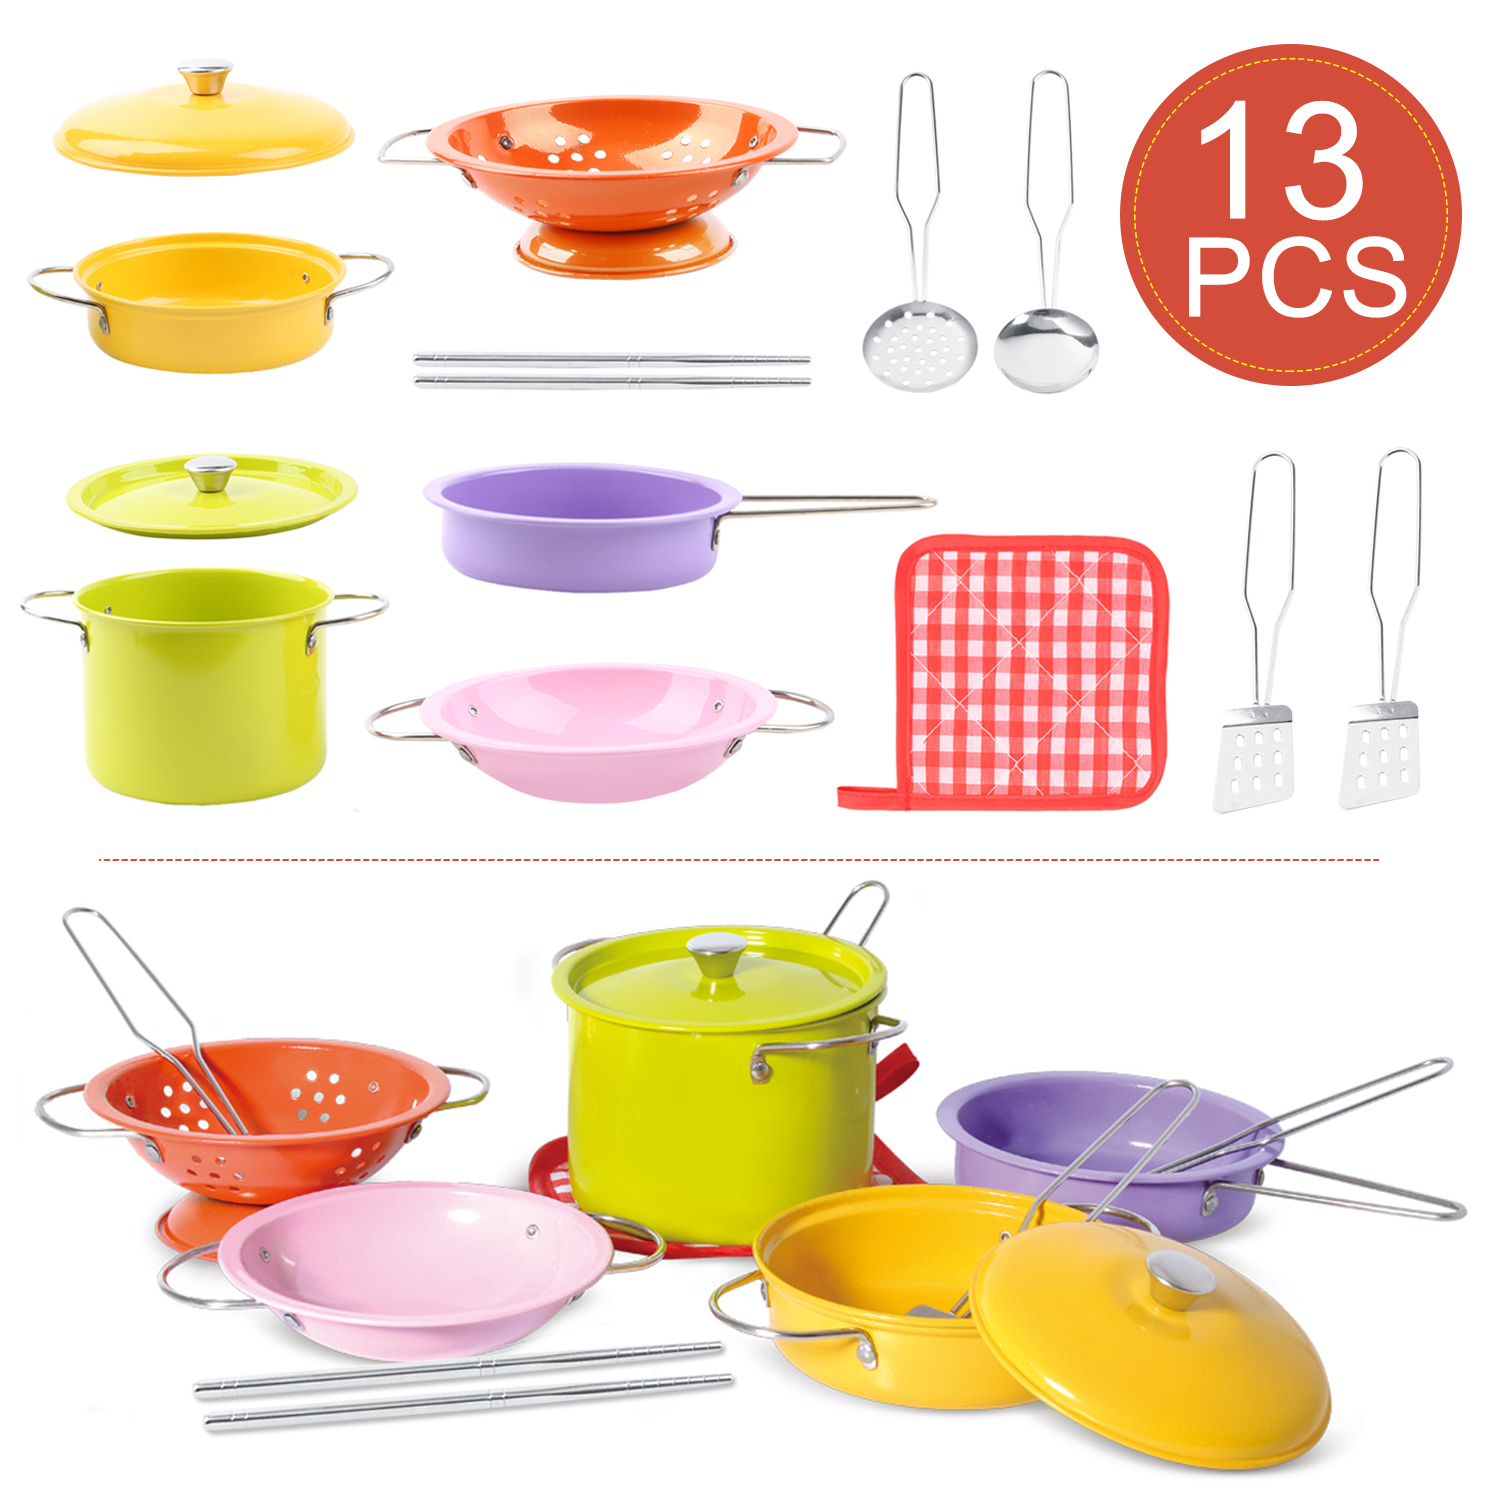 13PCS Educational Colorful Pretend Play <font><b>Kitchen</b></font> <font><b>Toy</b></font> Stainless Steel Kitchenware Pot, Chopsticks,Dish <font><b>Set</b></font> For Kid image